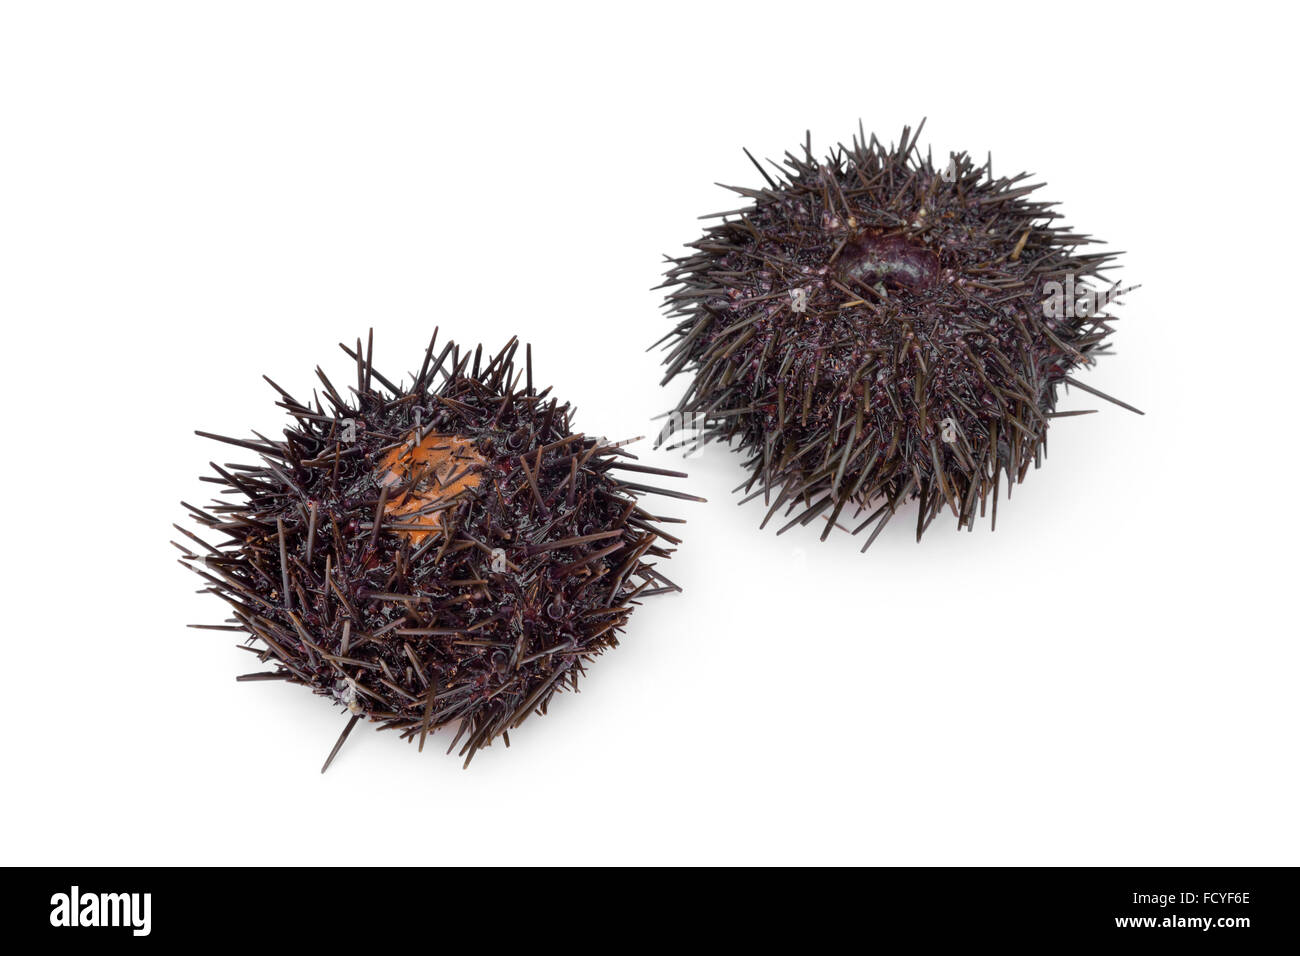 Urchins Cut Out Stock Images & Pictures - Alamy